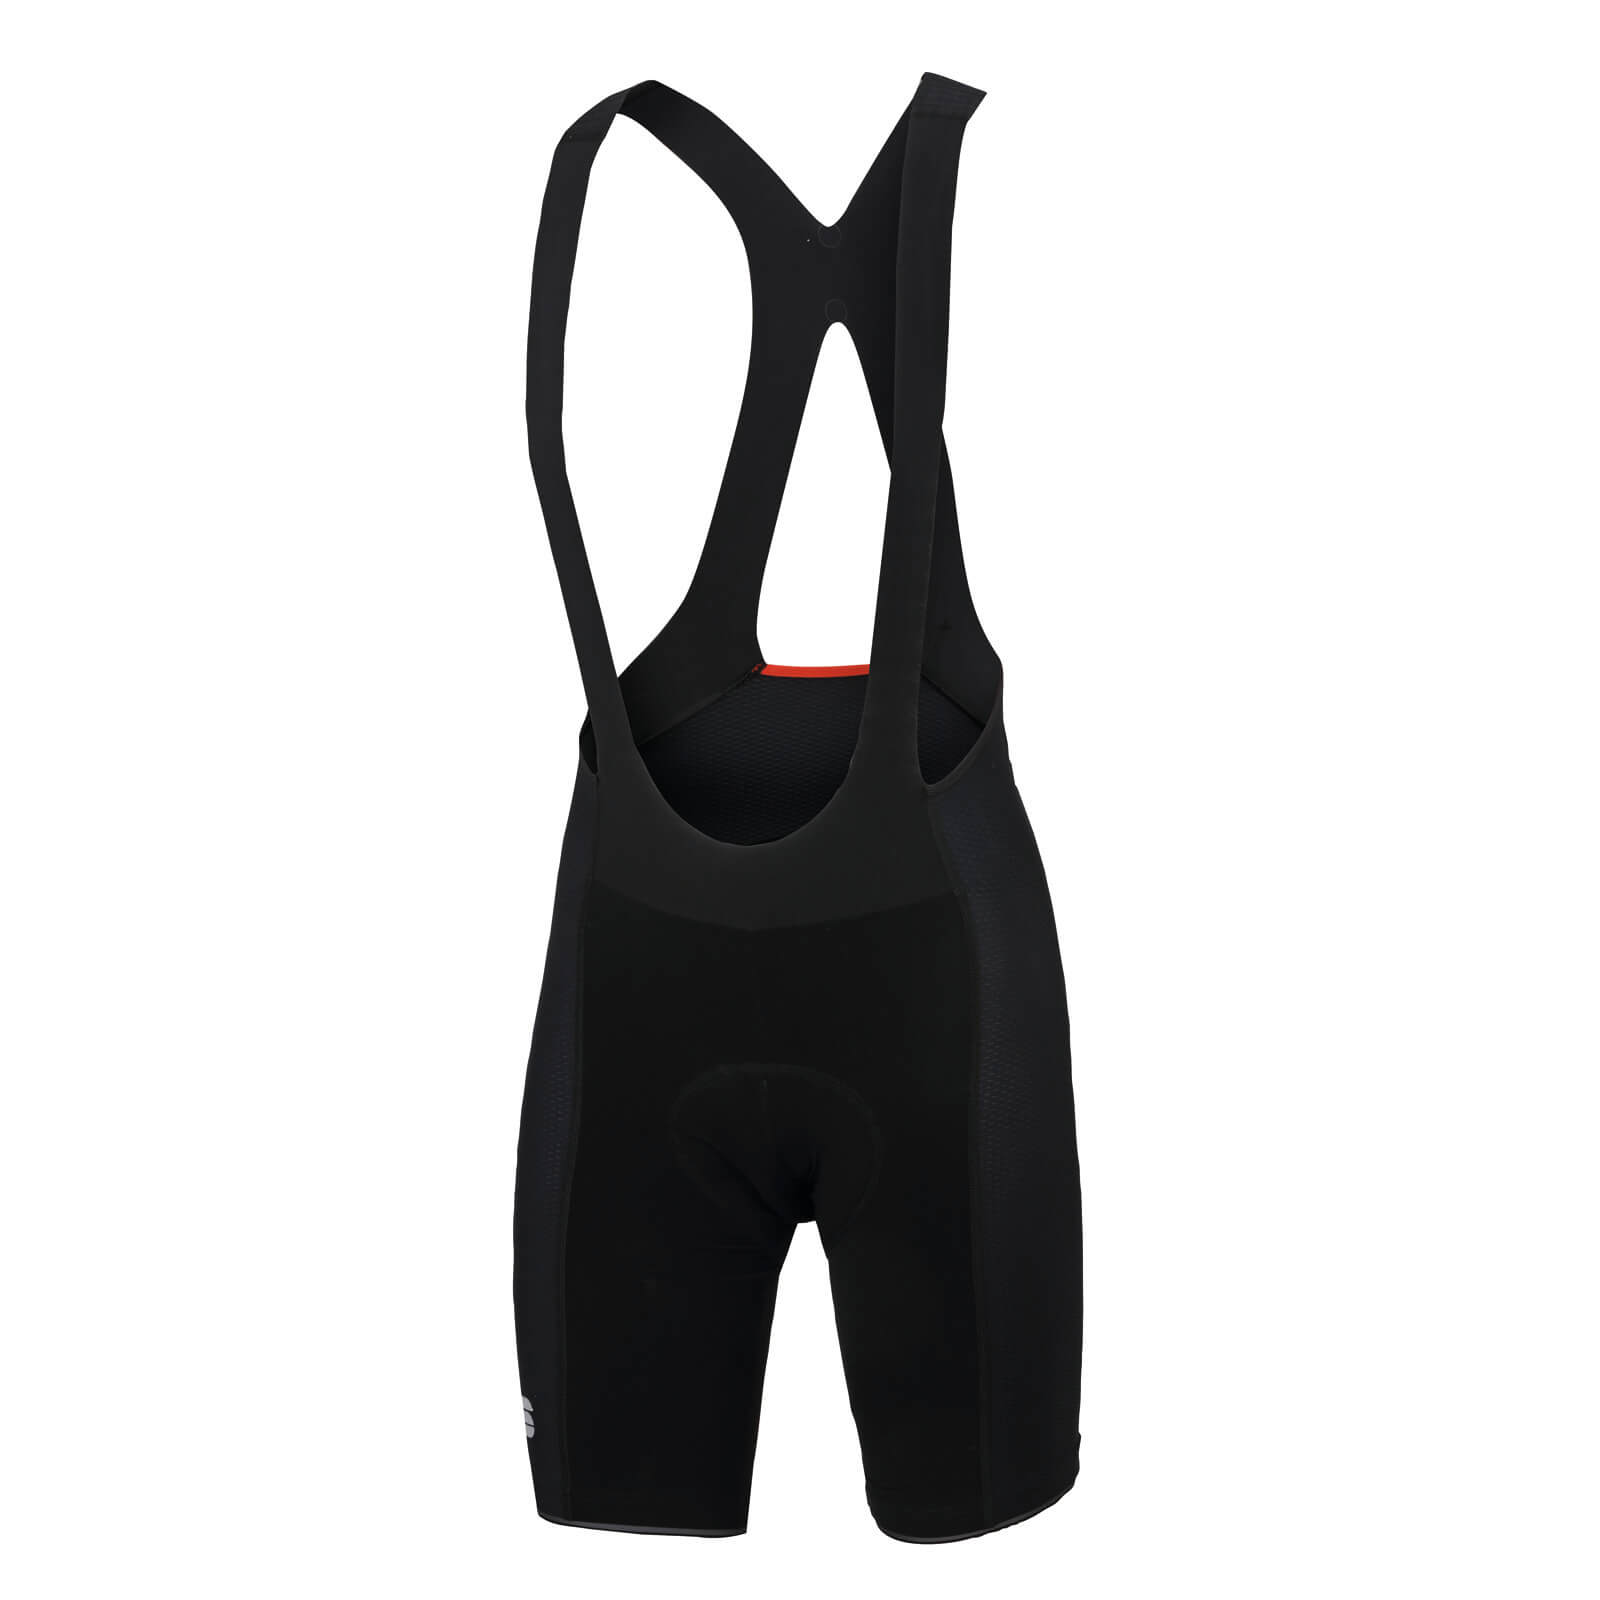 Sportful Total Comfort Bib Shorts - Black - XS